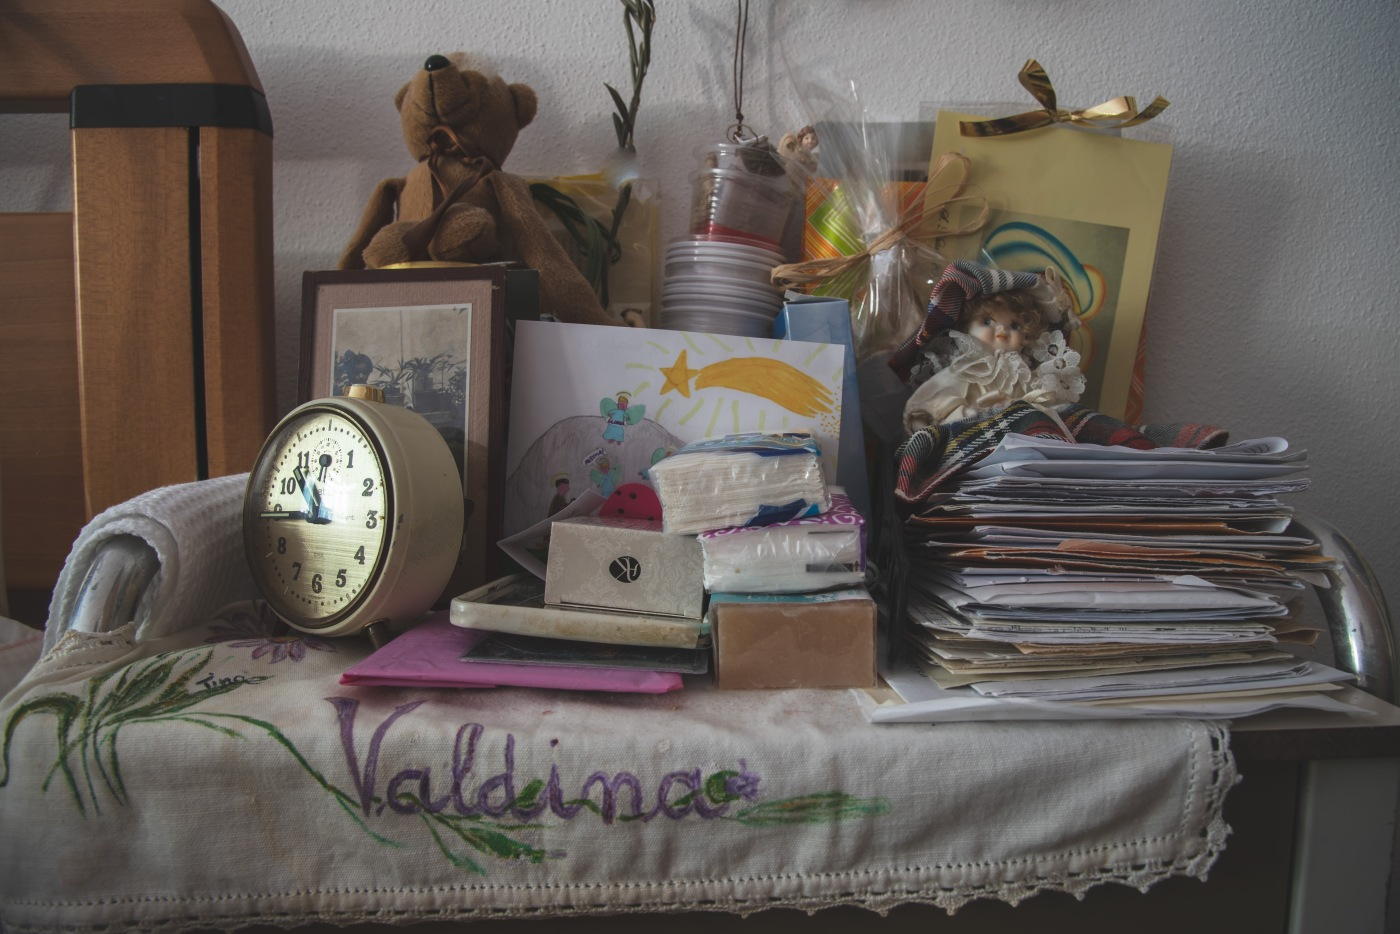 Valdina   Home is where your heart is